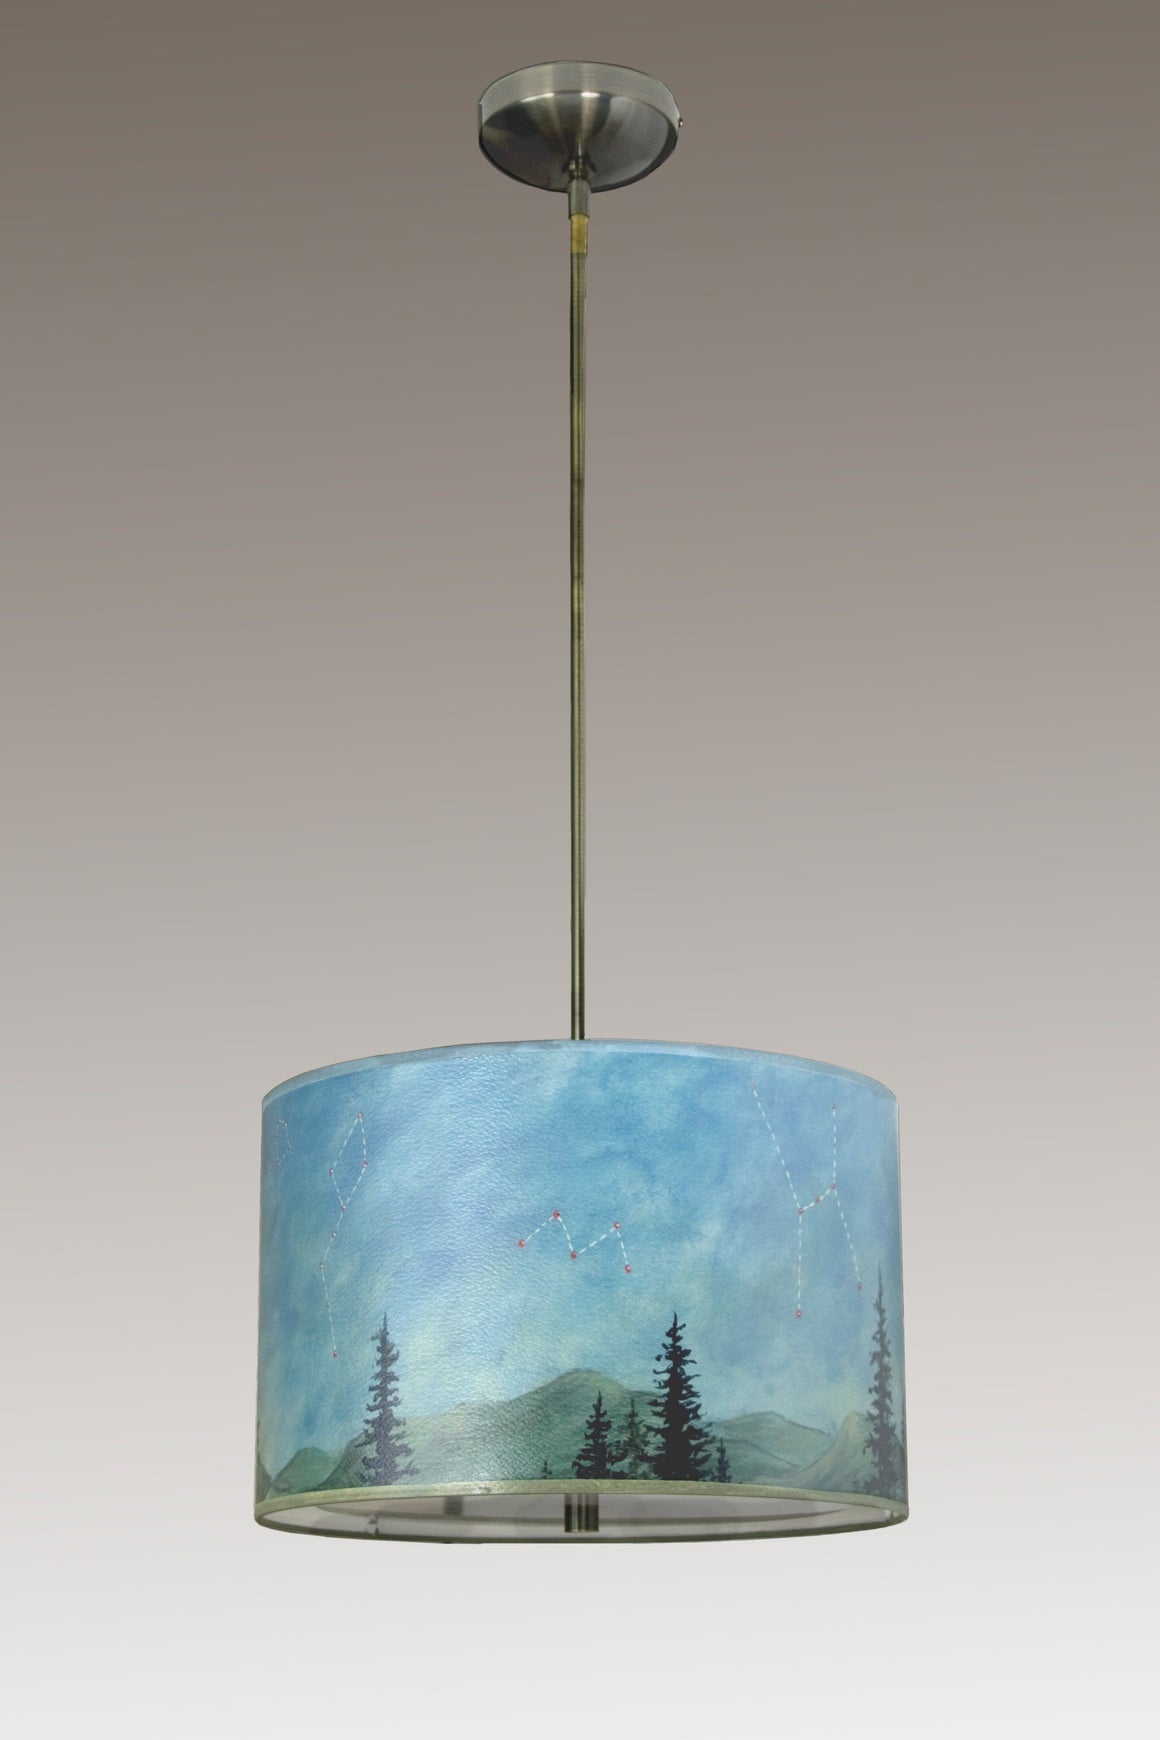 Large Drum Pendant Lampshade with Antique Brass or Satin Nickel in Midnight